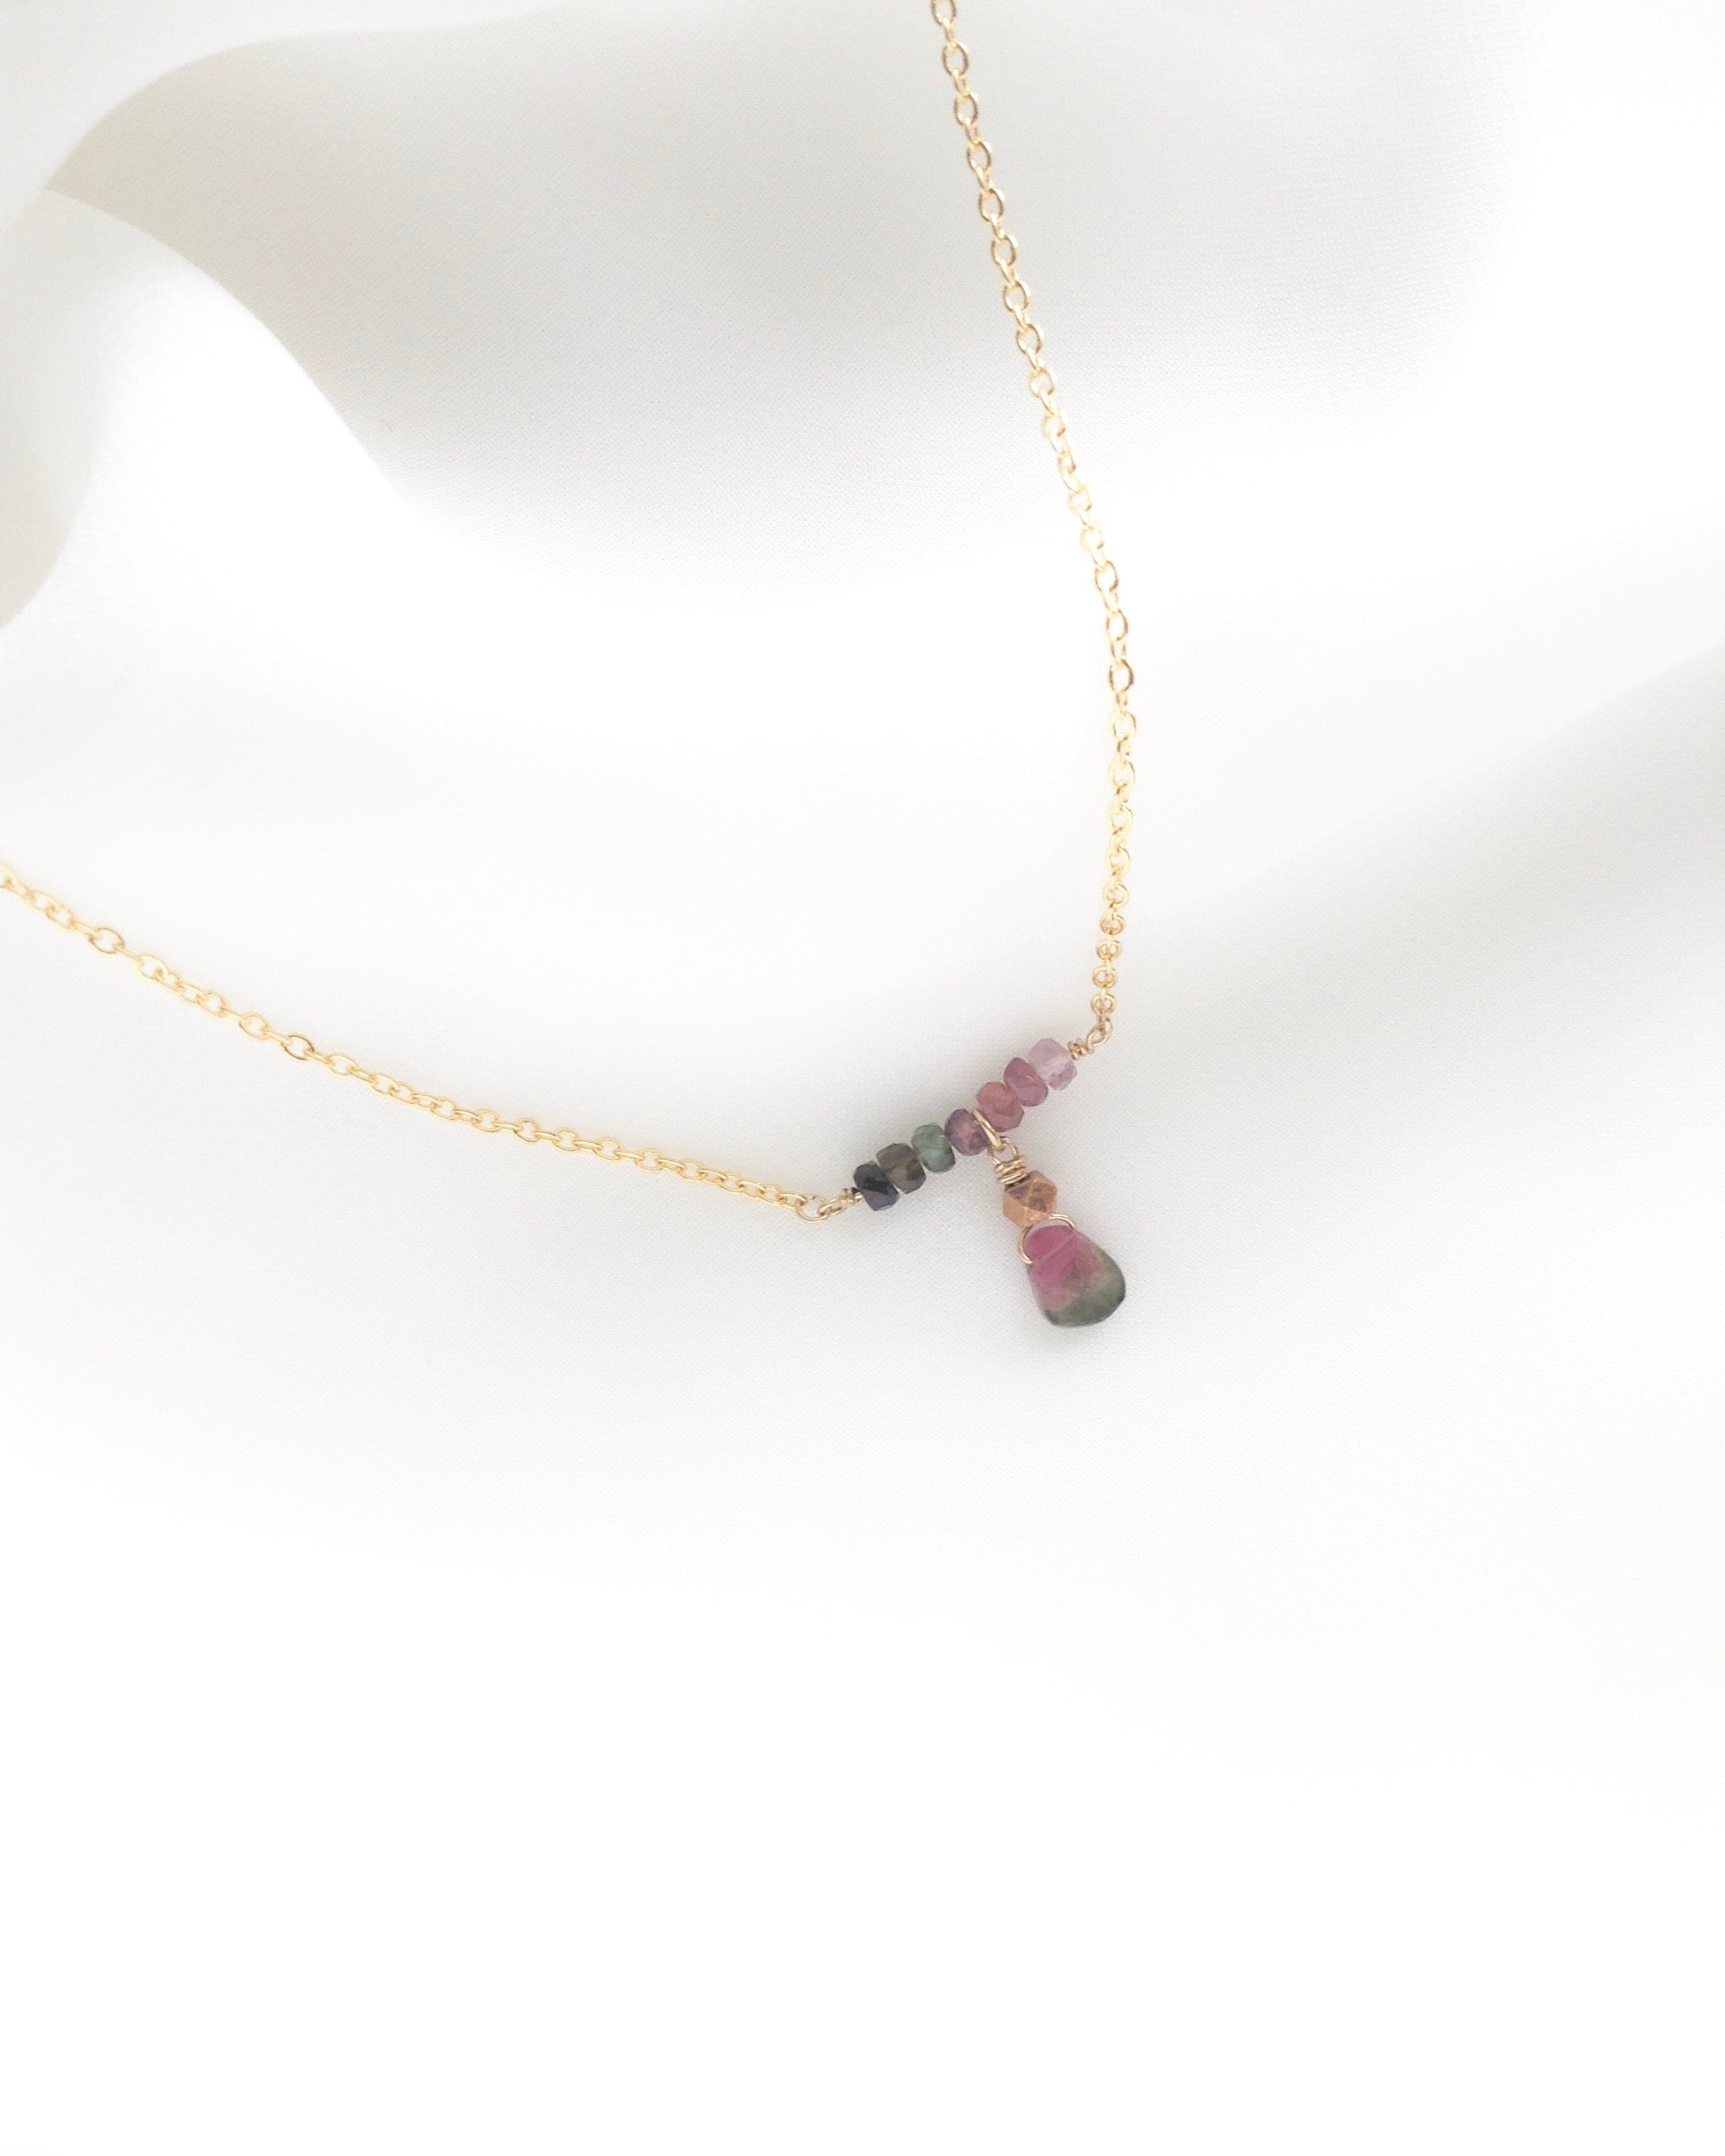 Watermelon Tourmaline Necklace in Gold Filled or Sterling Silver | IB Jewelry